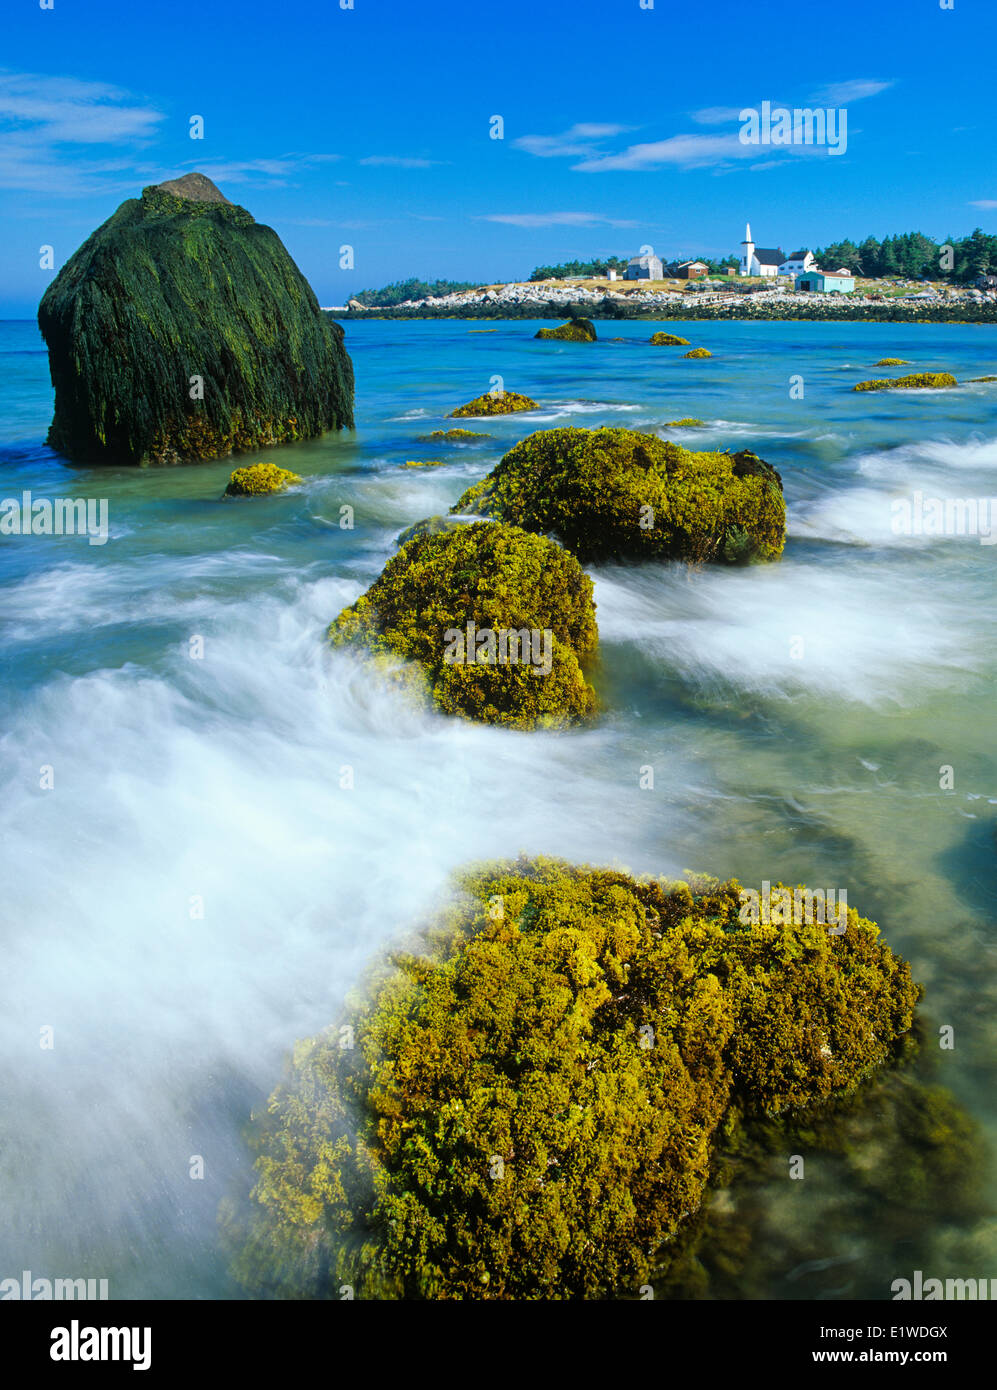 irish moss or carrageen moss, an algae, (Chondrus crispus), on rocks at low tide, Seal Island, Nova Scotia, Canada - Stock Image